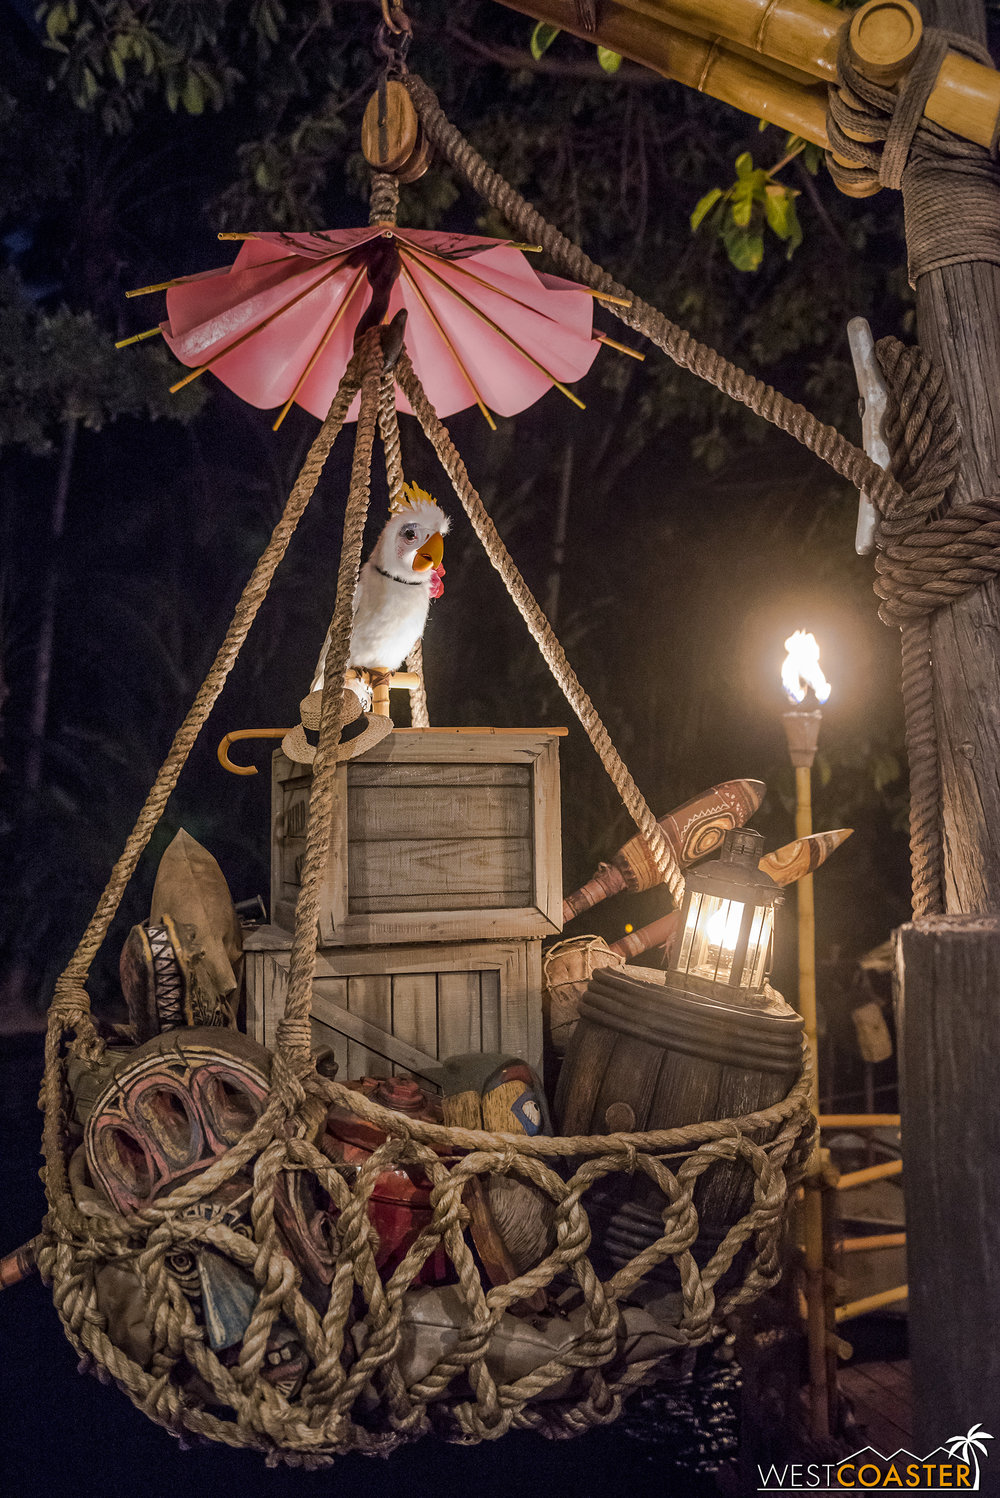 Finally, Rosita the Tiki Room bird has relocated out here.